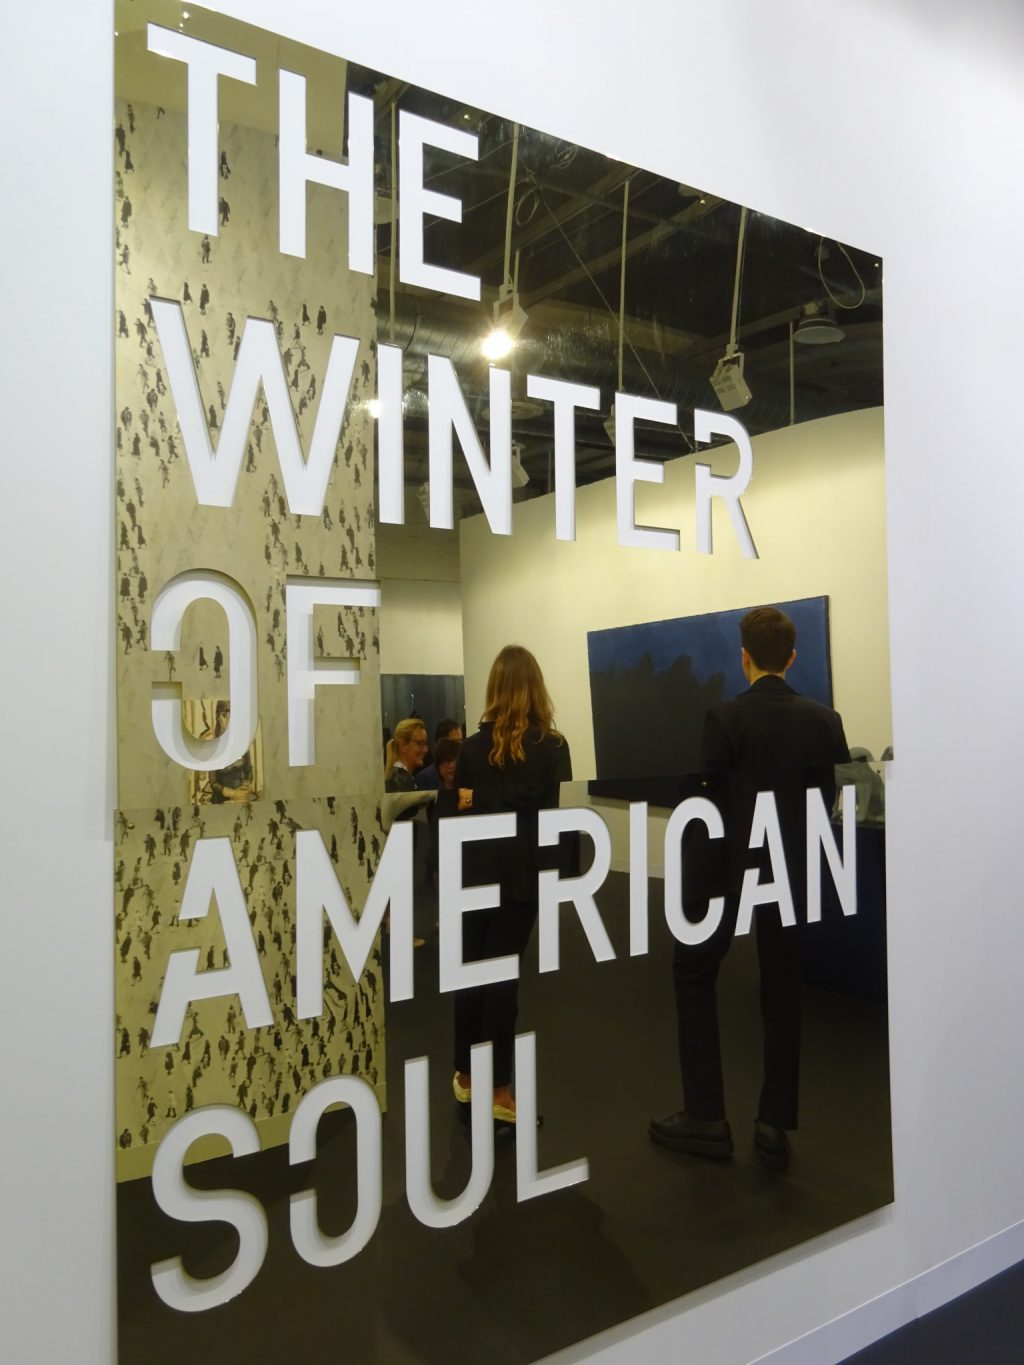 """Rirkrit Tiravanija """"untitled 2018 (the winter of american soul)"""" 2018, Polished brass, 226.7 x 186.1 overall, Edition of 2 with 1 AP @ Gavin Brown Enterprise"""